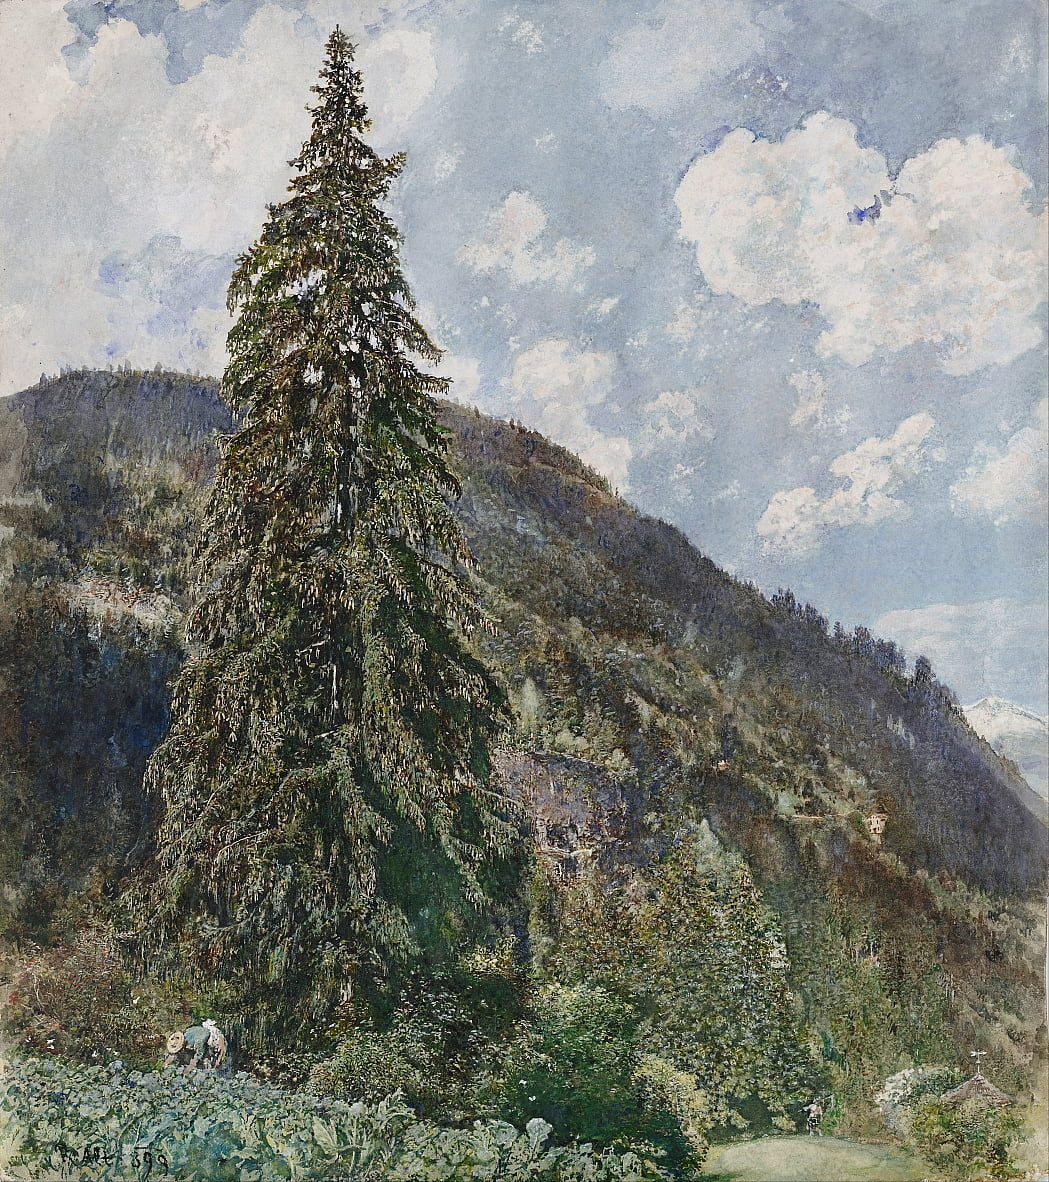 The old Spruce in Bad Gastein by Rudolf von Alt